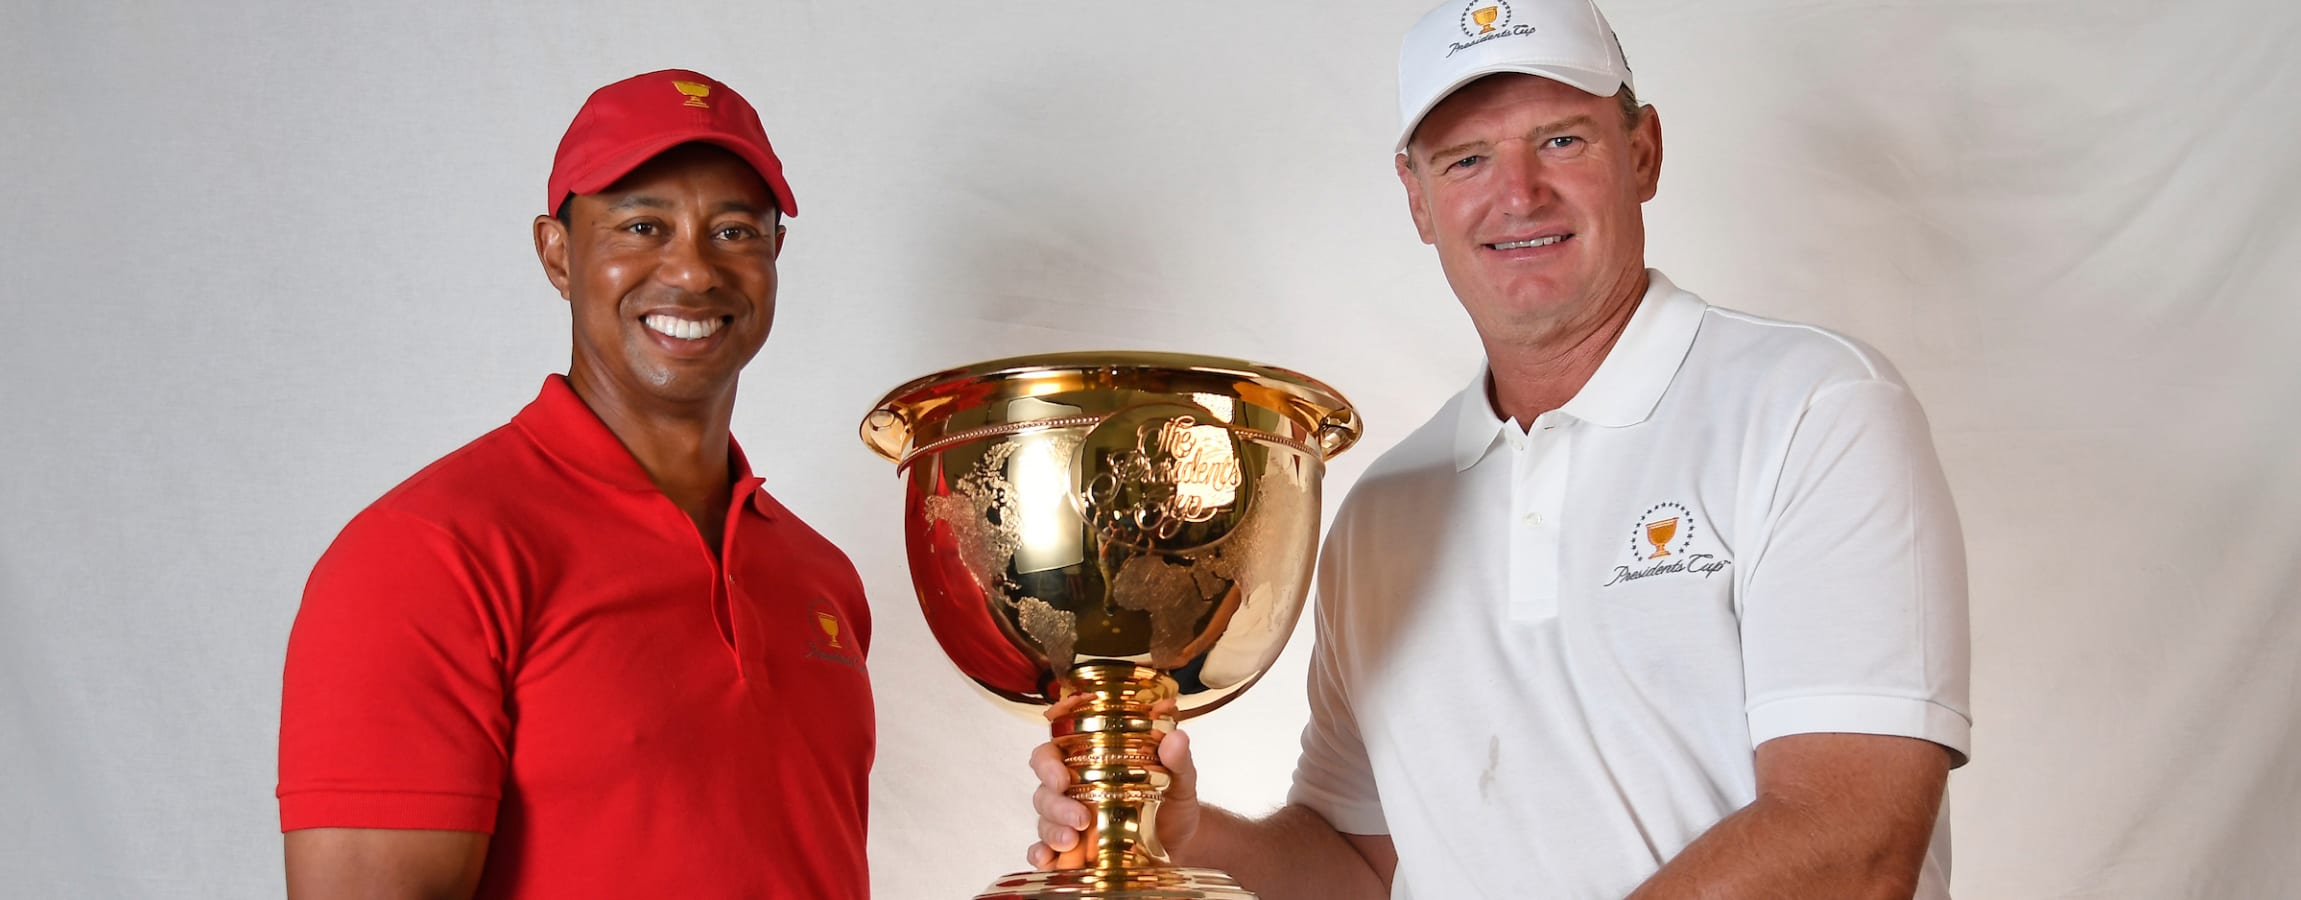 Presidents Cup Captains' Picks